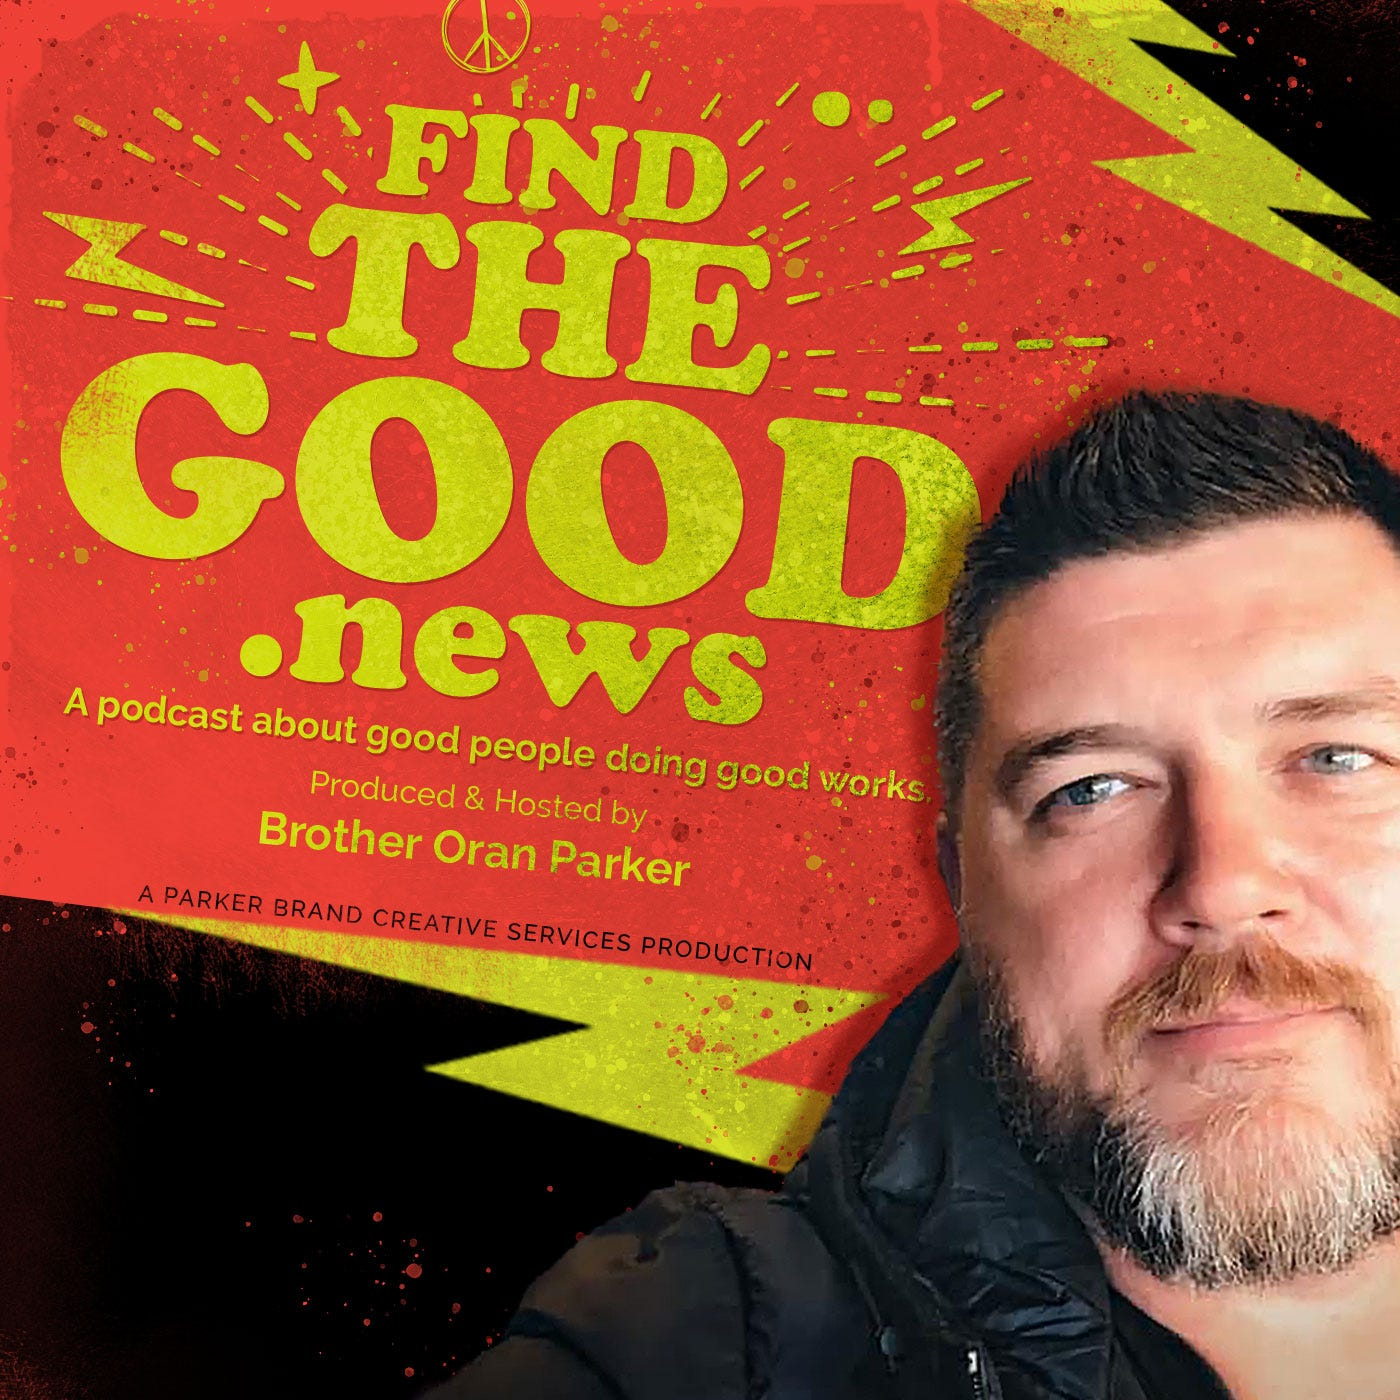 Ep. 97 - The Step Towards Joy - Beacon Series Ft. Kathy Callahan - Find the Good News with Brother Oran